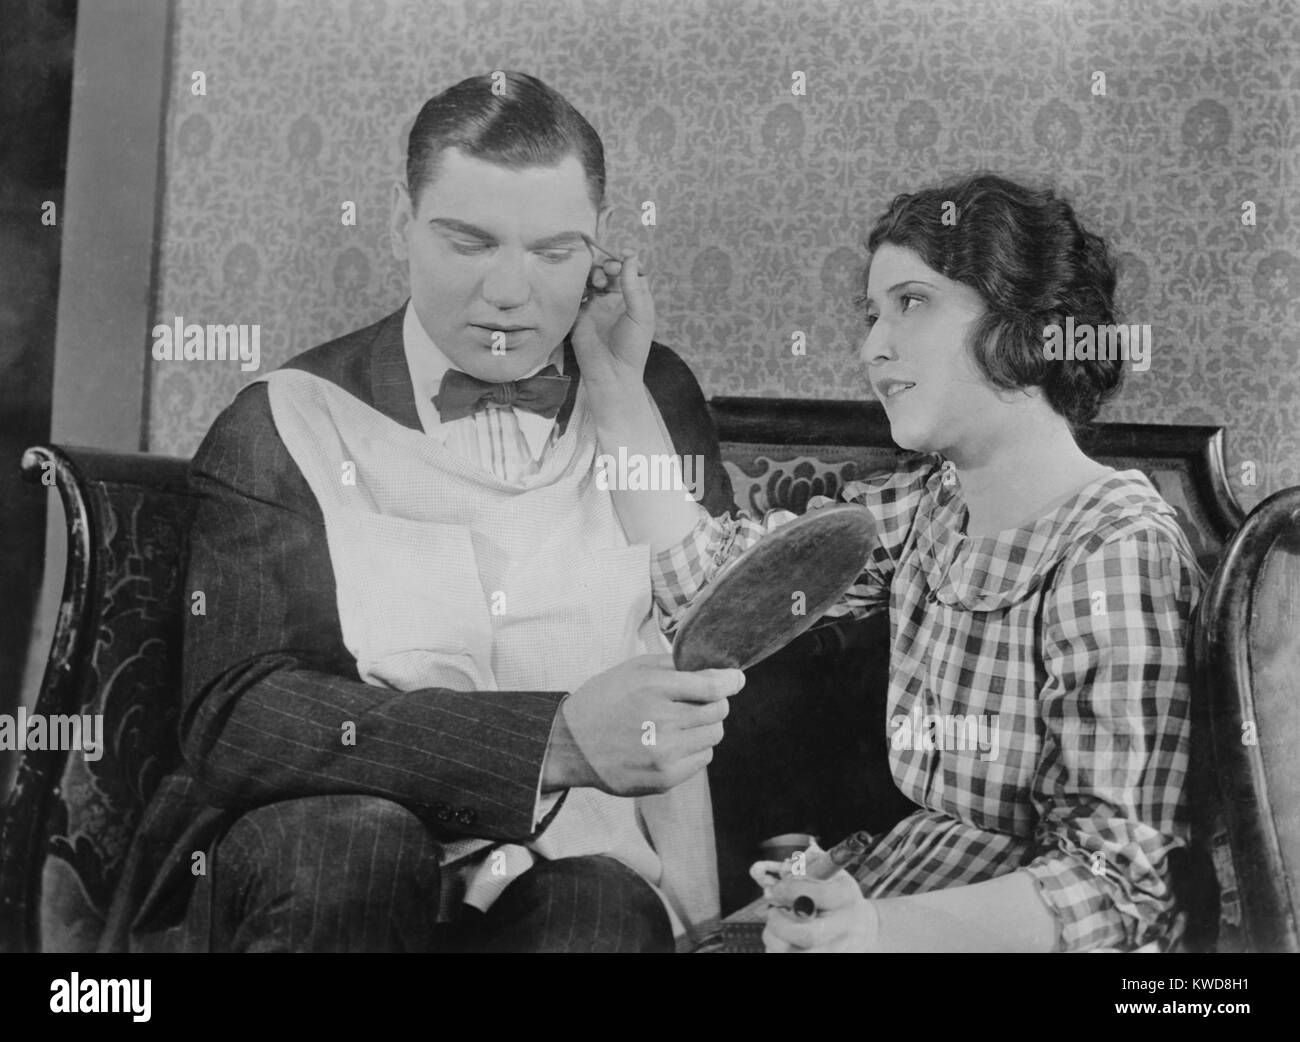 Former heavyweight champion boxer Jack Dempsey has make up applied. After boxing he starred in half a dozen silent - Stock Image